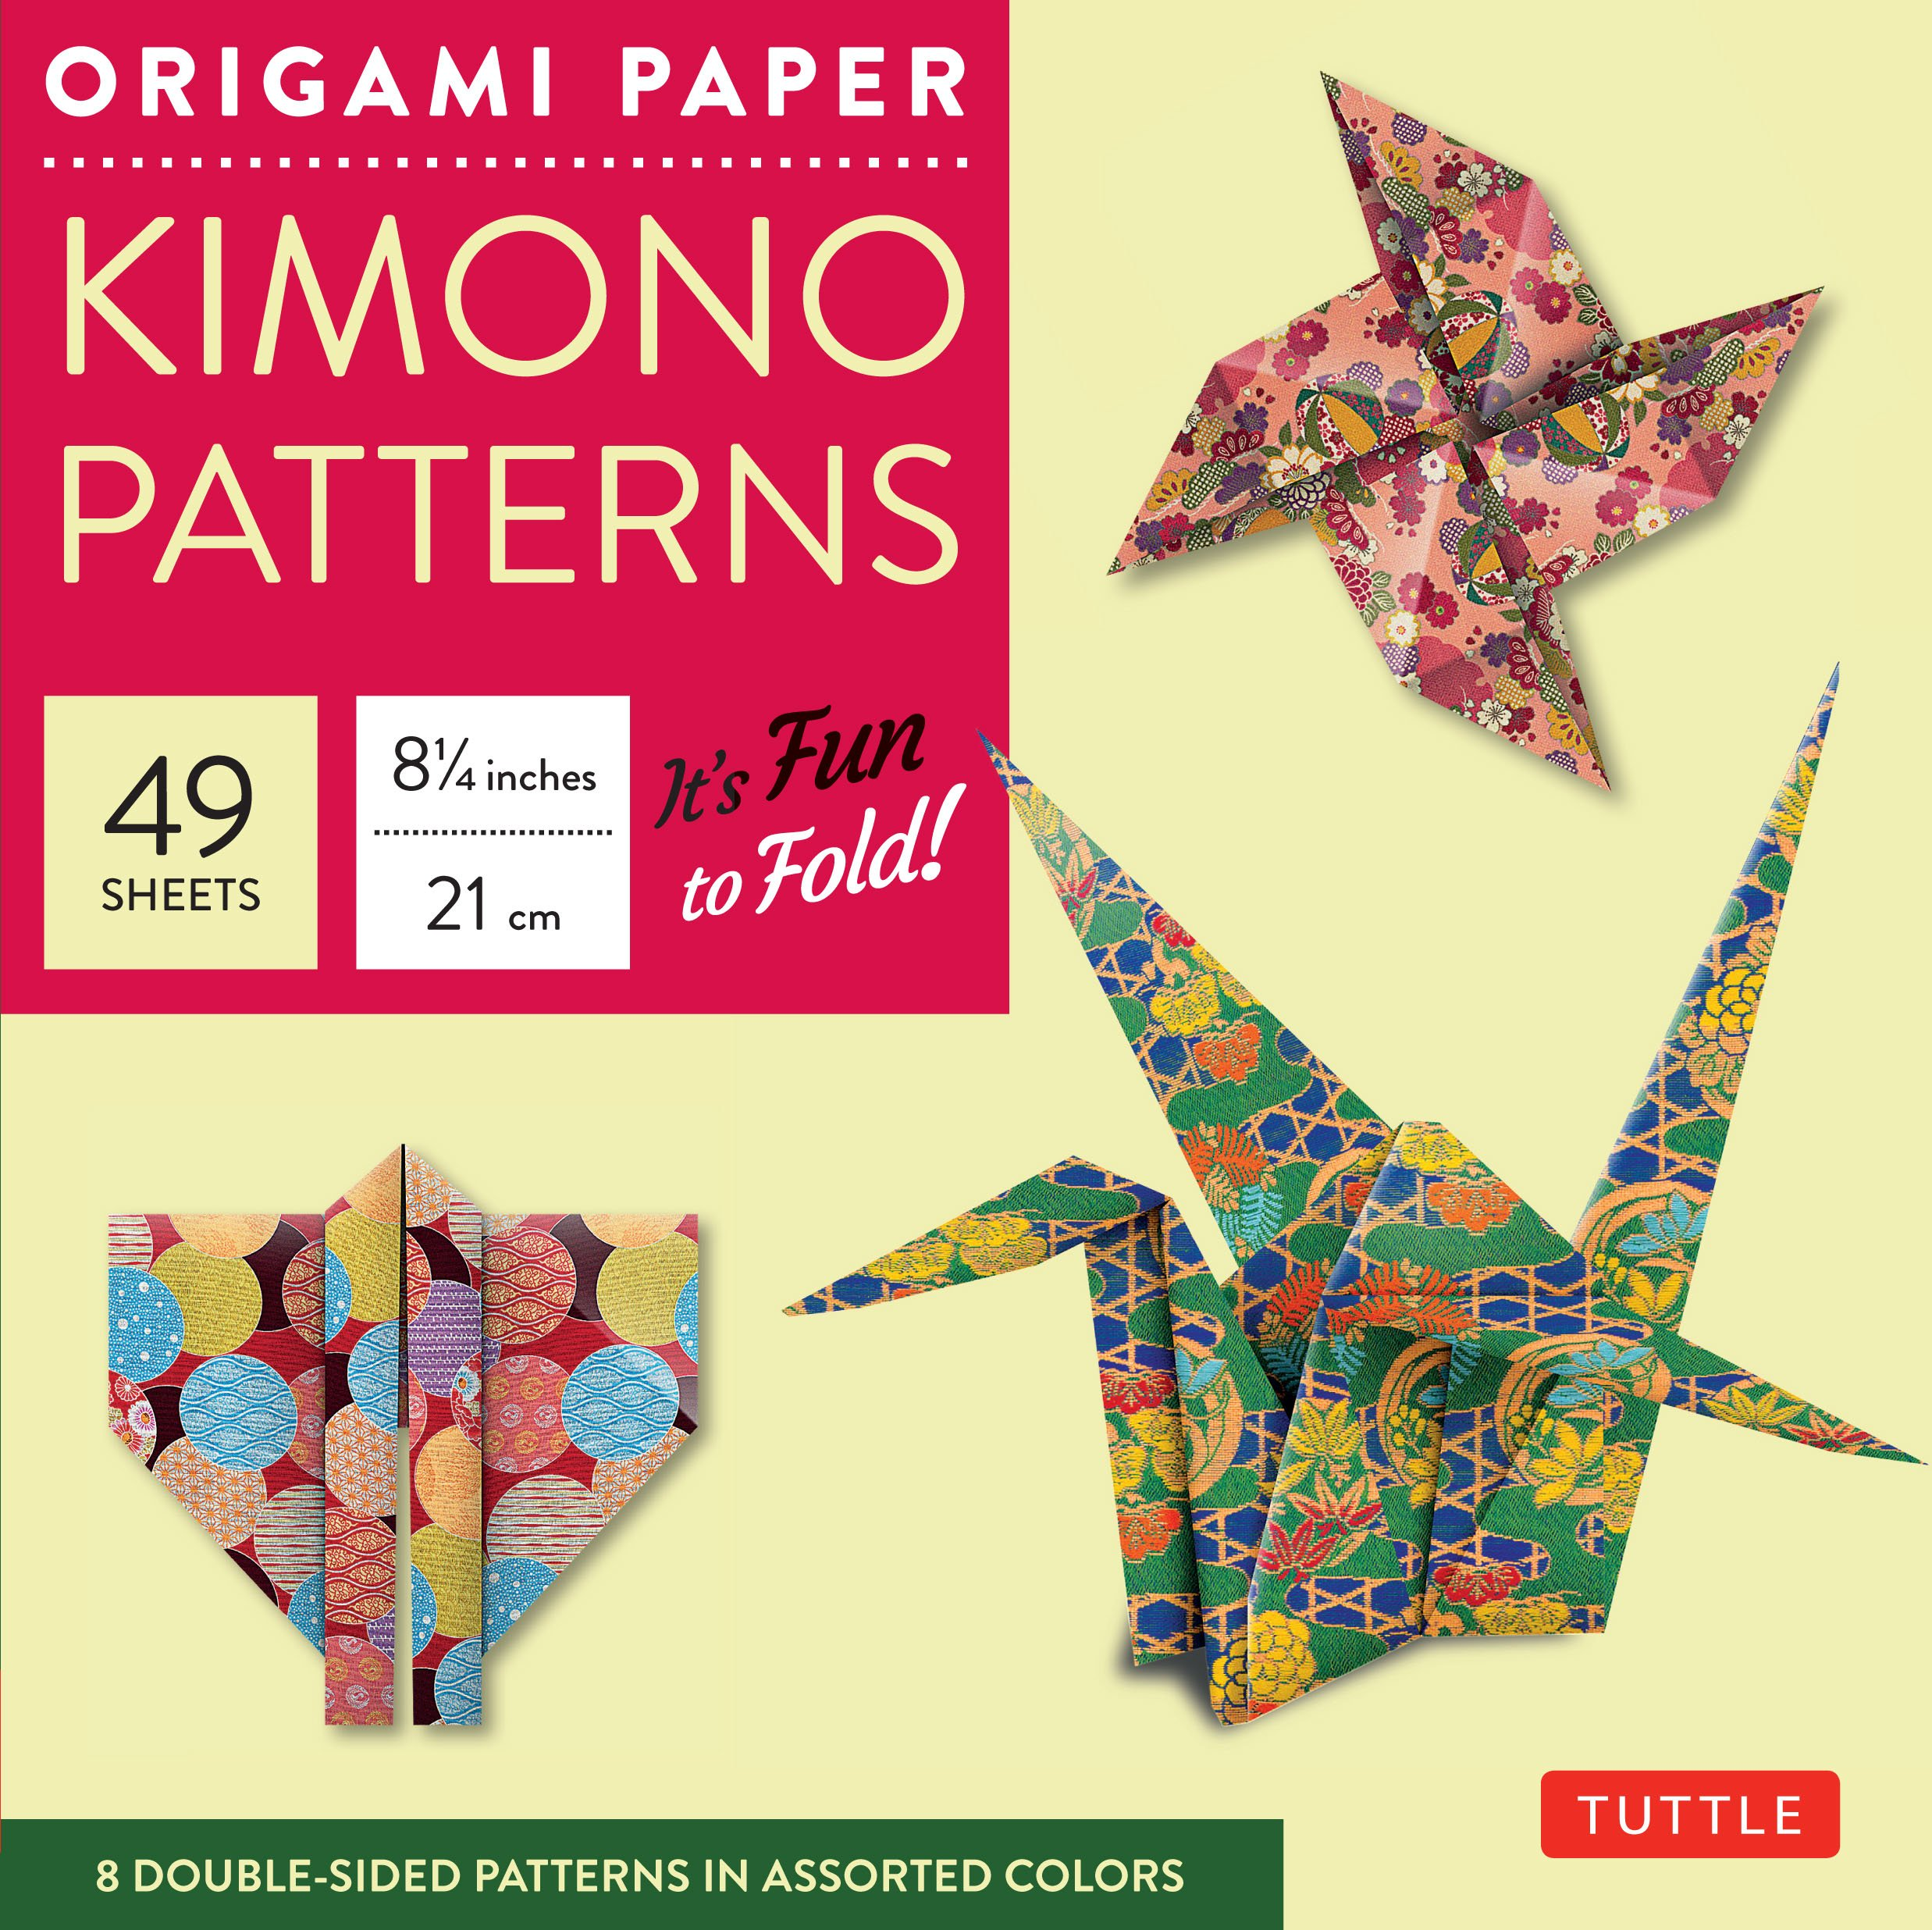 "Origami Paper - Kimono Patterns - Large 8 1/4"" - 48 Sheets: Tuttle Origami Paper: High-Quality Origami Sheets Printed with 8 Different Designs: Instructions for 6 Projects Included Loose Leaf – October 10, 2009 Tuttle Publishing 4805310715 4336880745 ART"